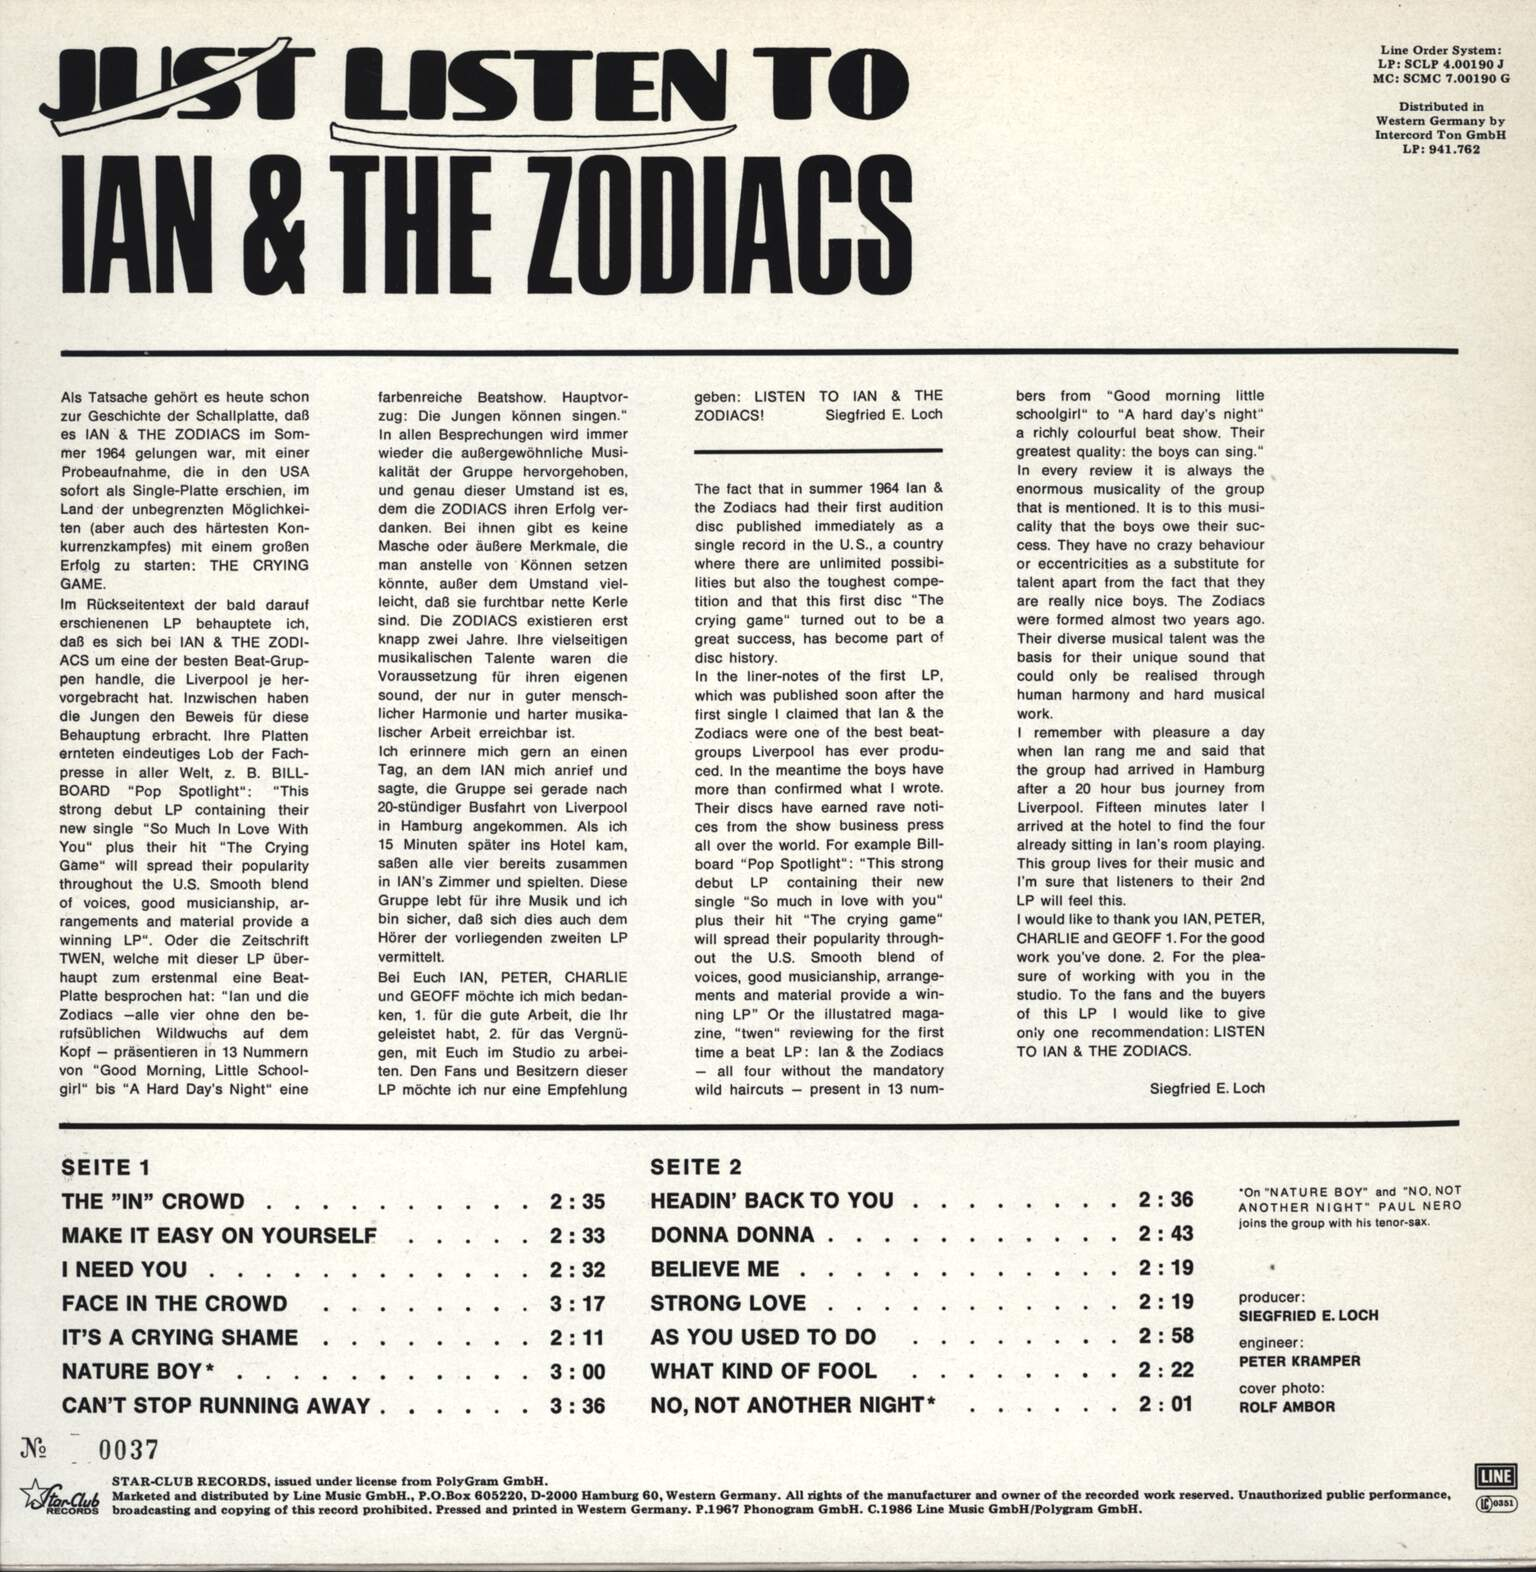 Ian & The Zodiacs: Listen To Ian & The Zodiacs, LP (Vinyl)